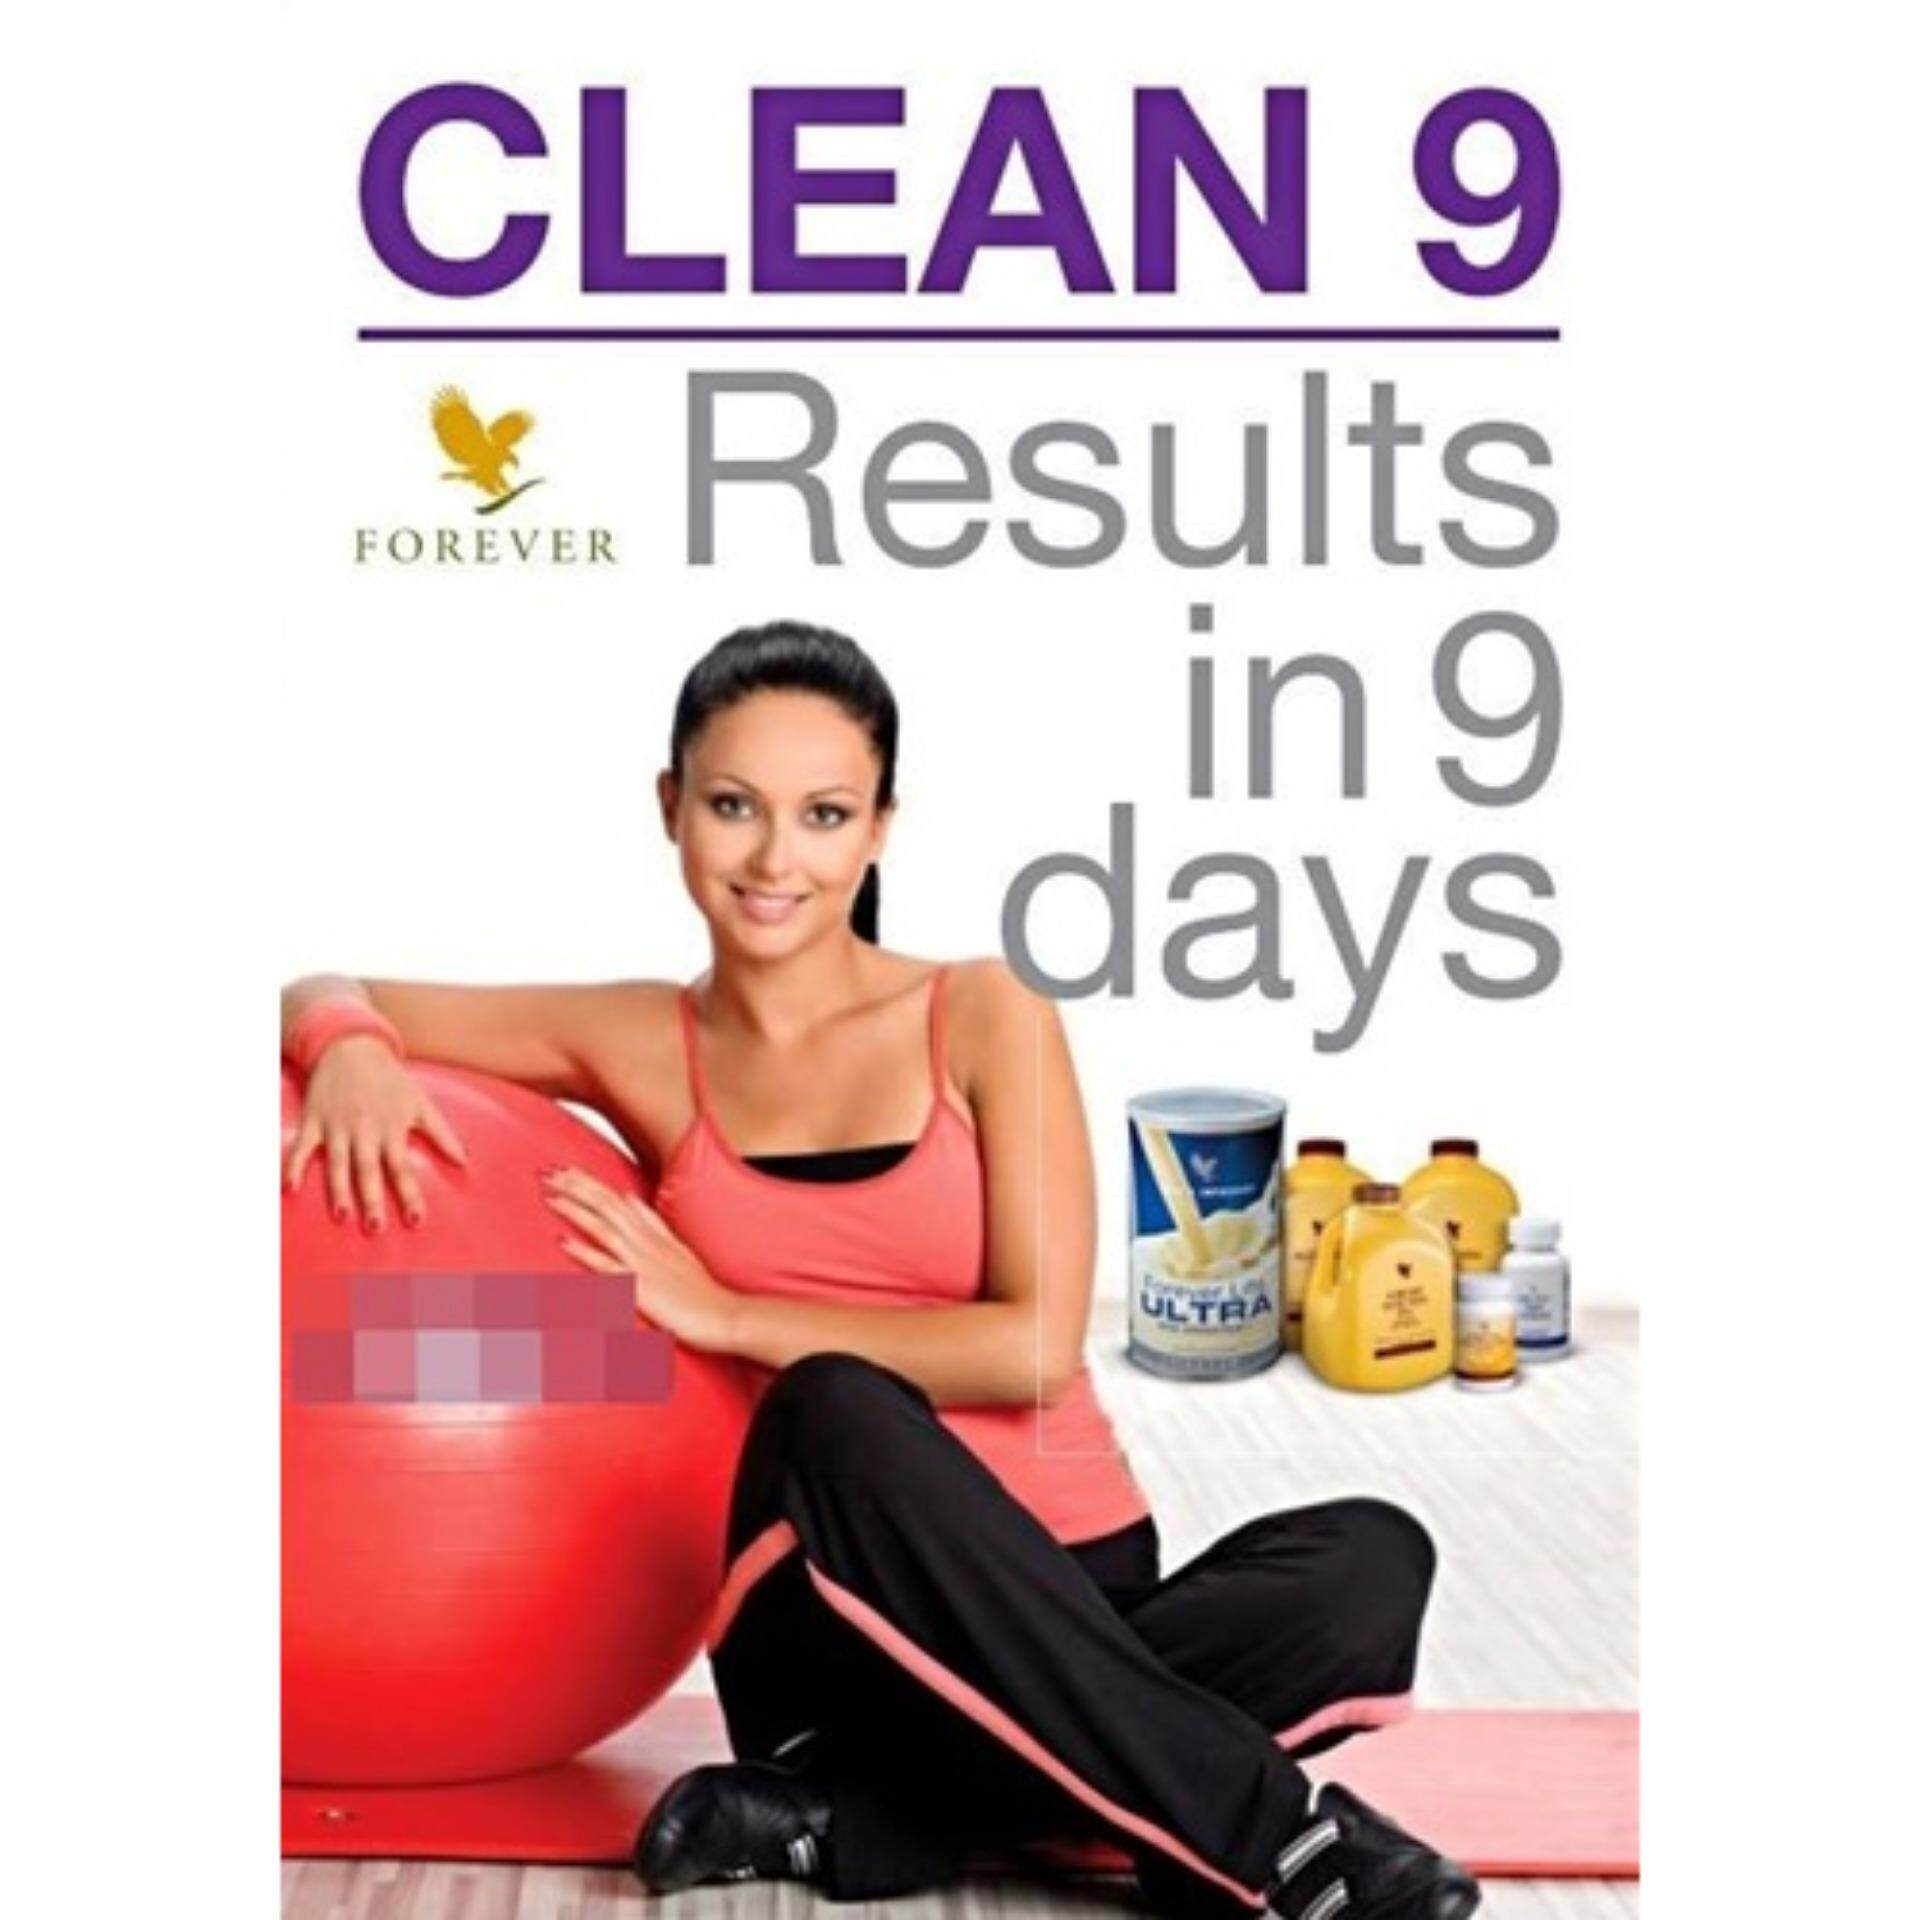 FOREVER LIVING - CLEAN 9